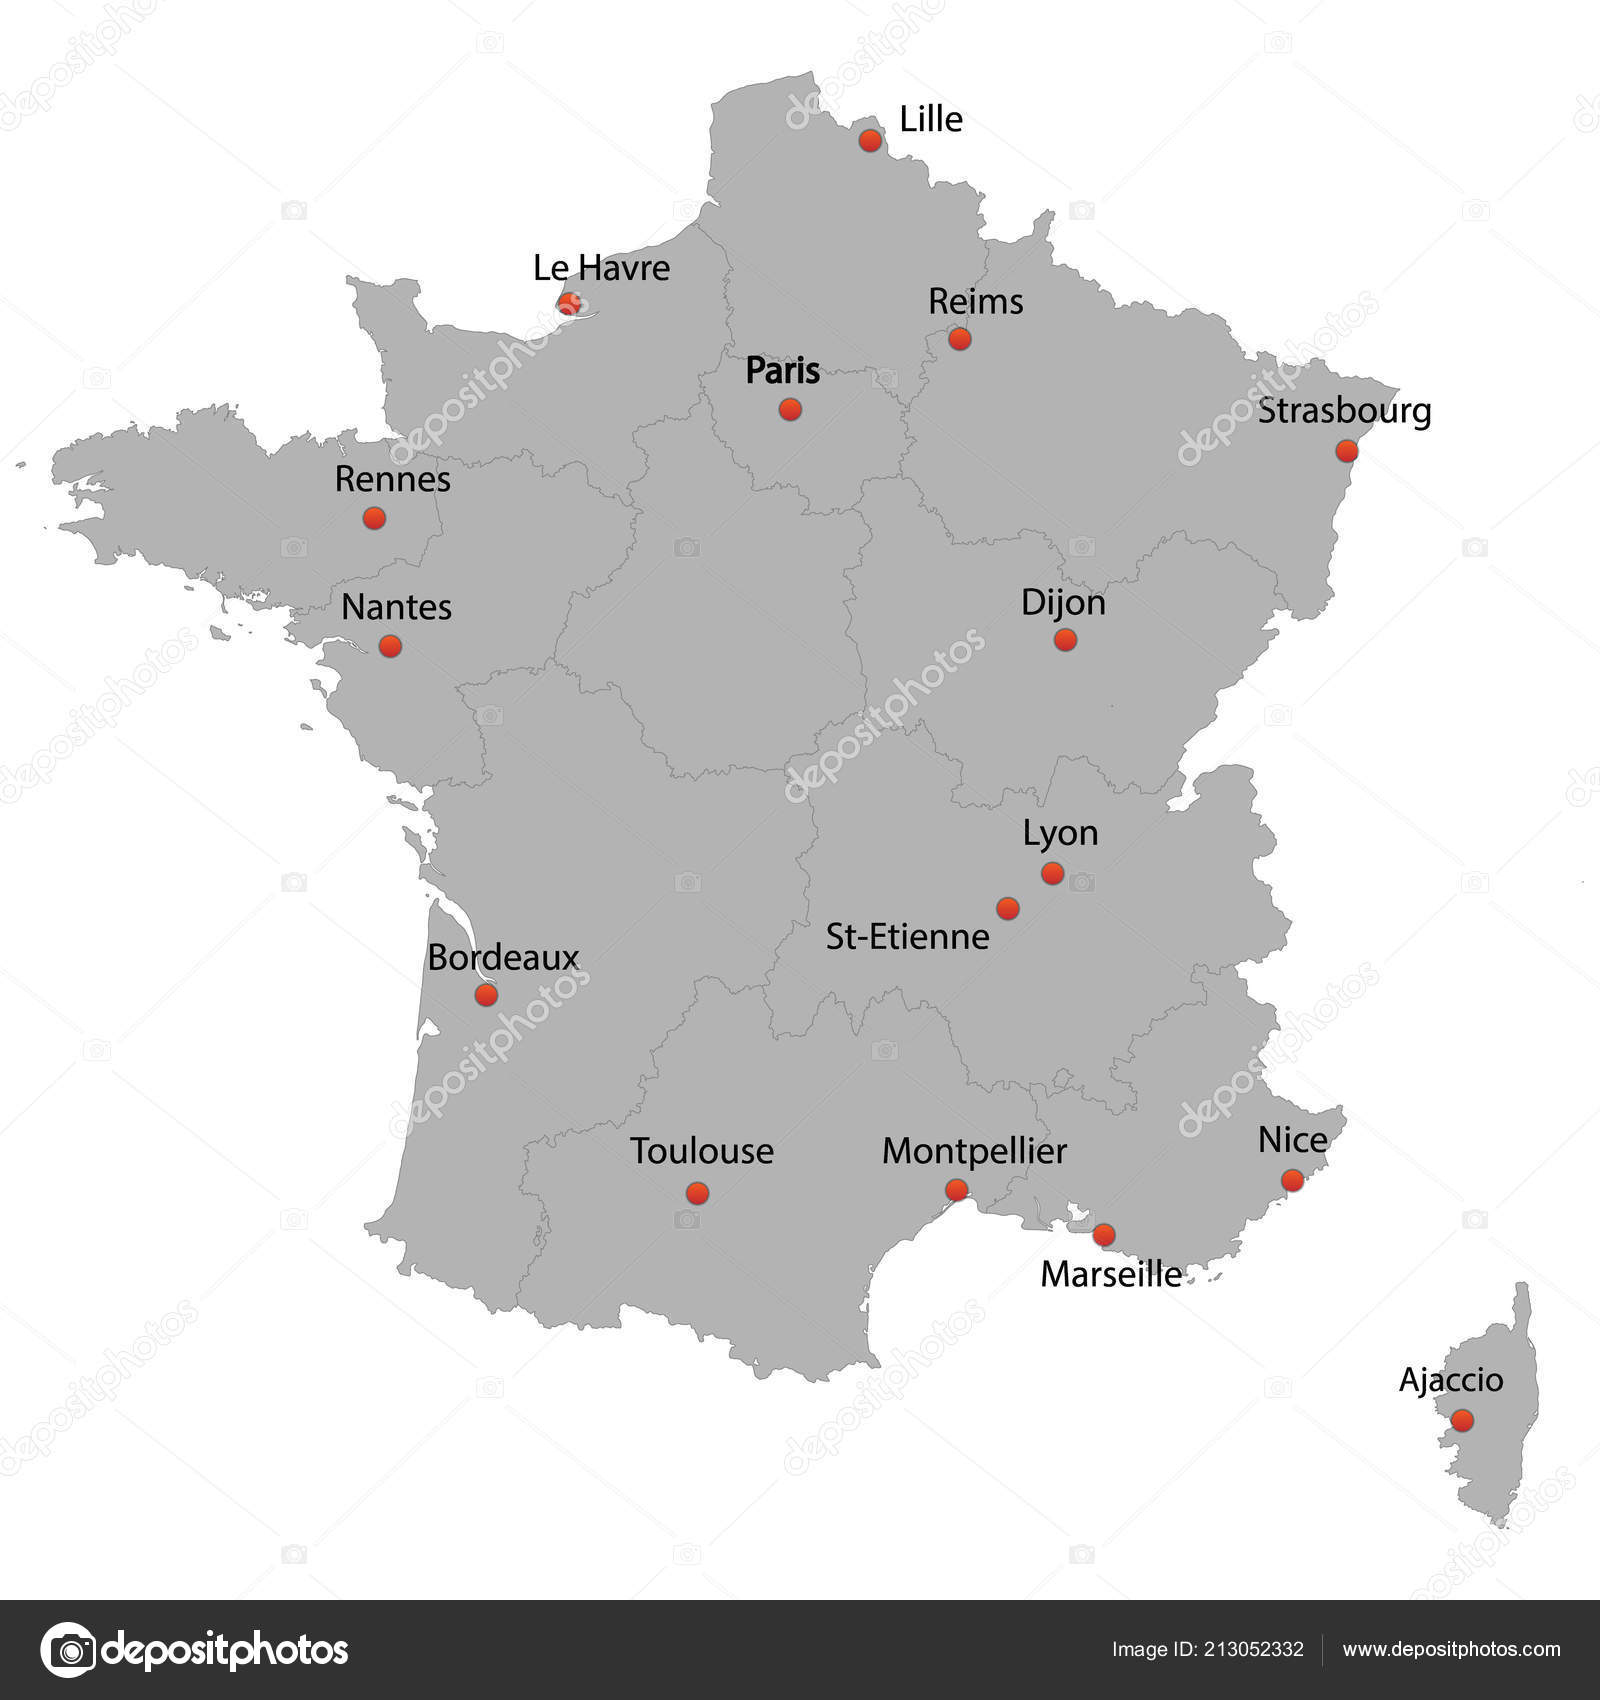 A Map Of France With Cities.Detailed Map France Cities Stock Vector C Grebeshkovmaxim Gmail